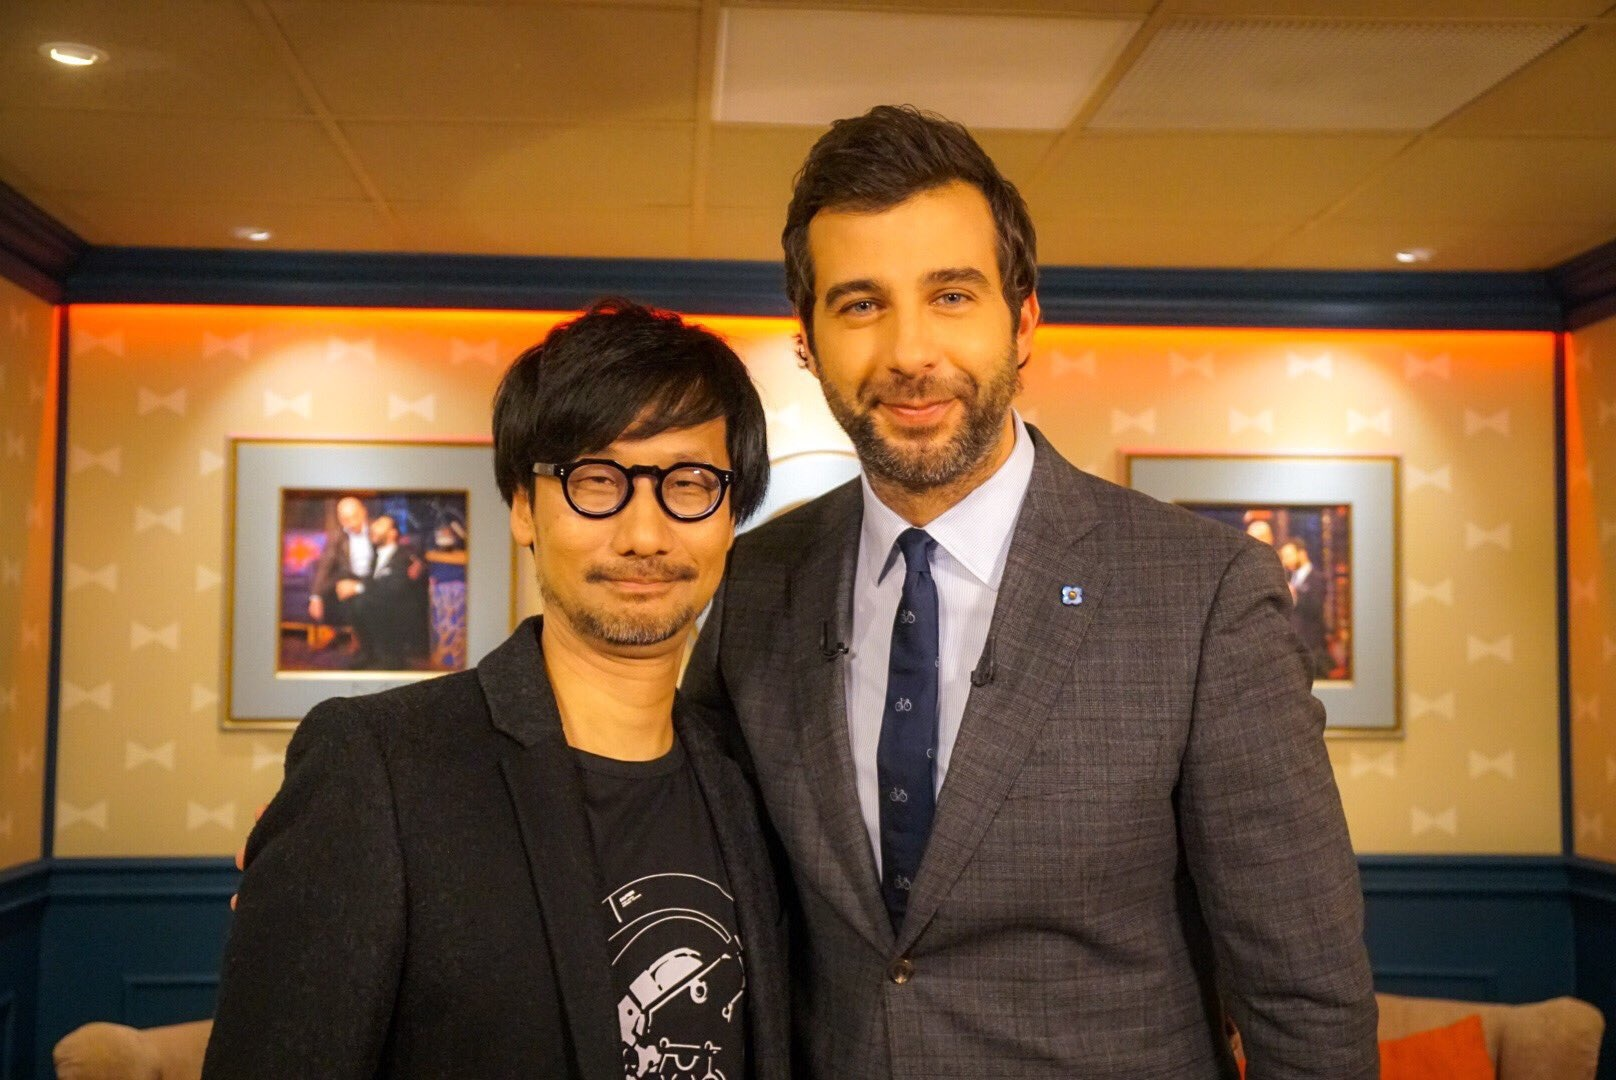 https://xgm.guru/p/xm/evening-with-urgant-and-kojima